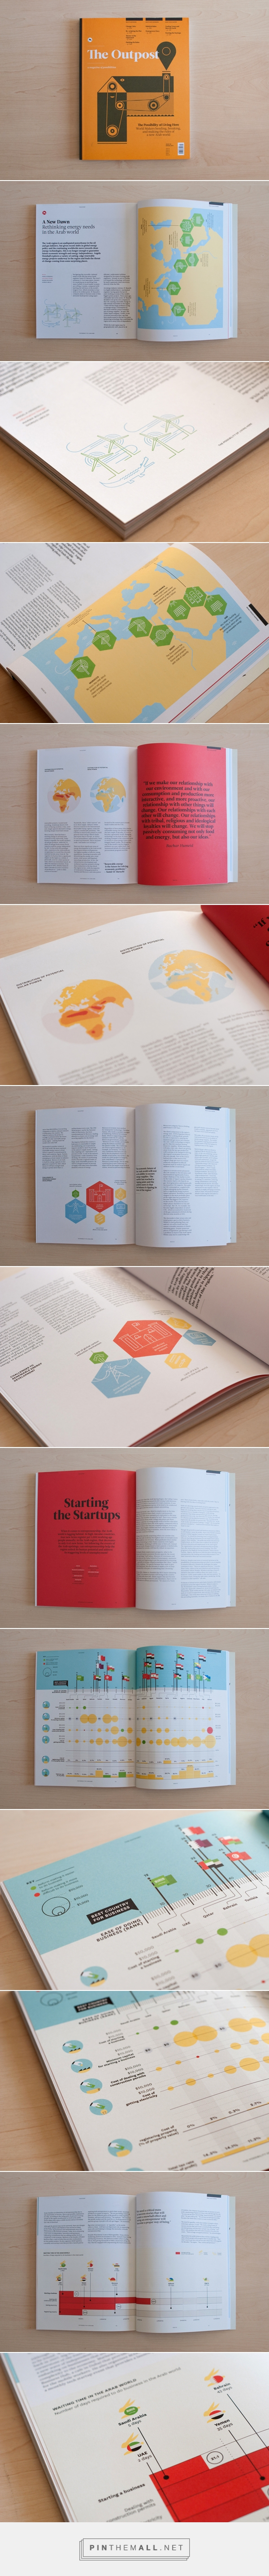 Infographics & Illustrations - The Outpost #02 on Behance... - a grouped images picture - Pin Them All